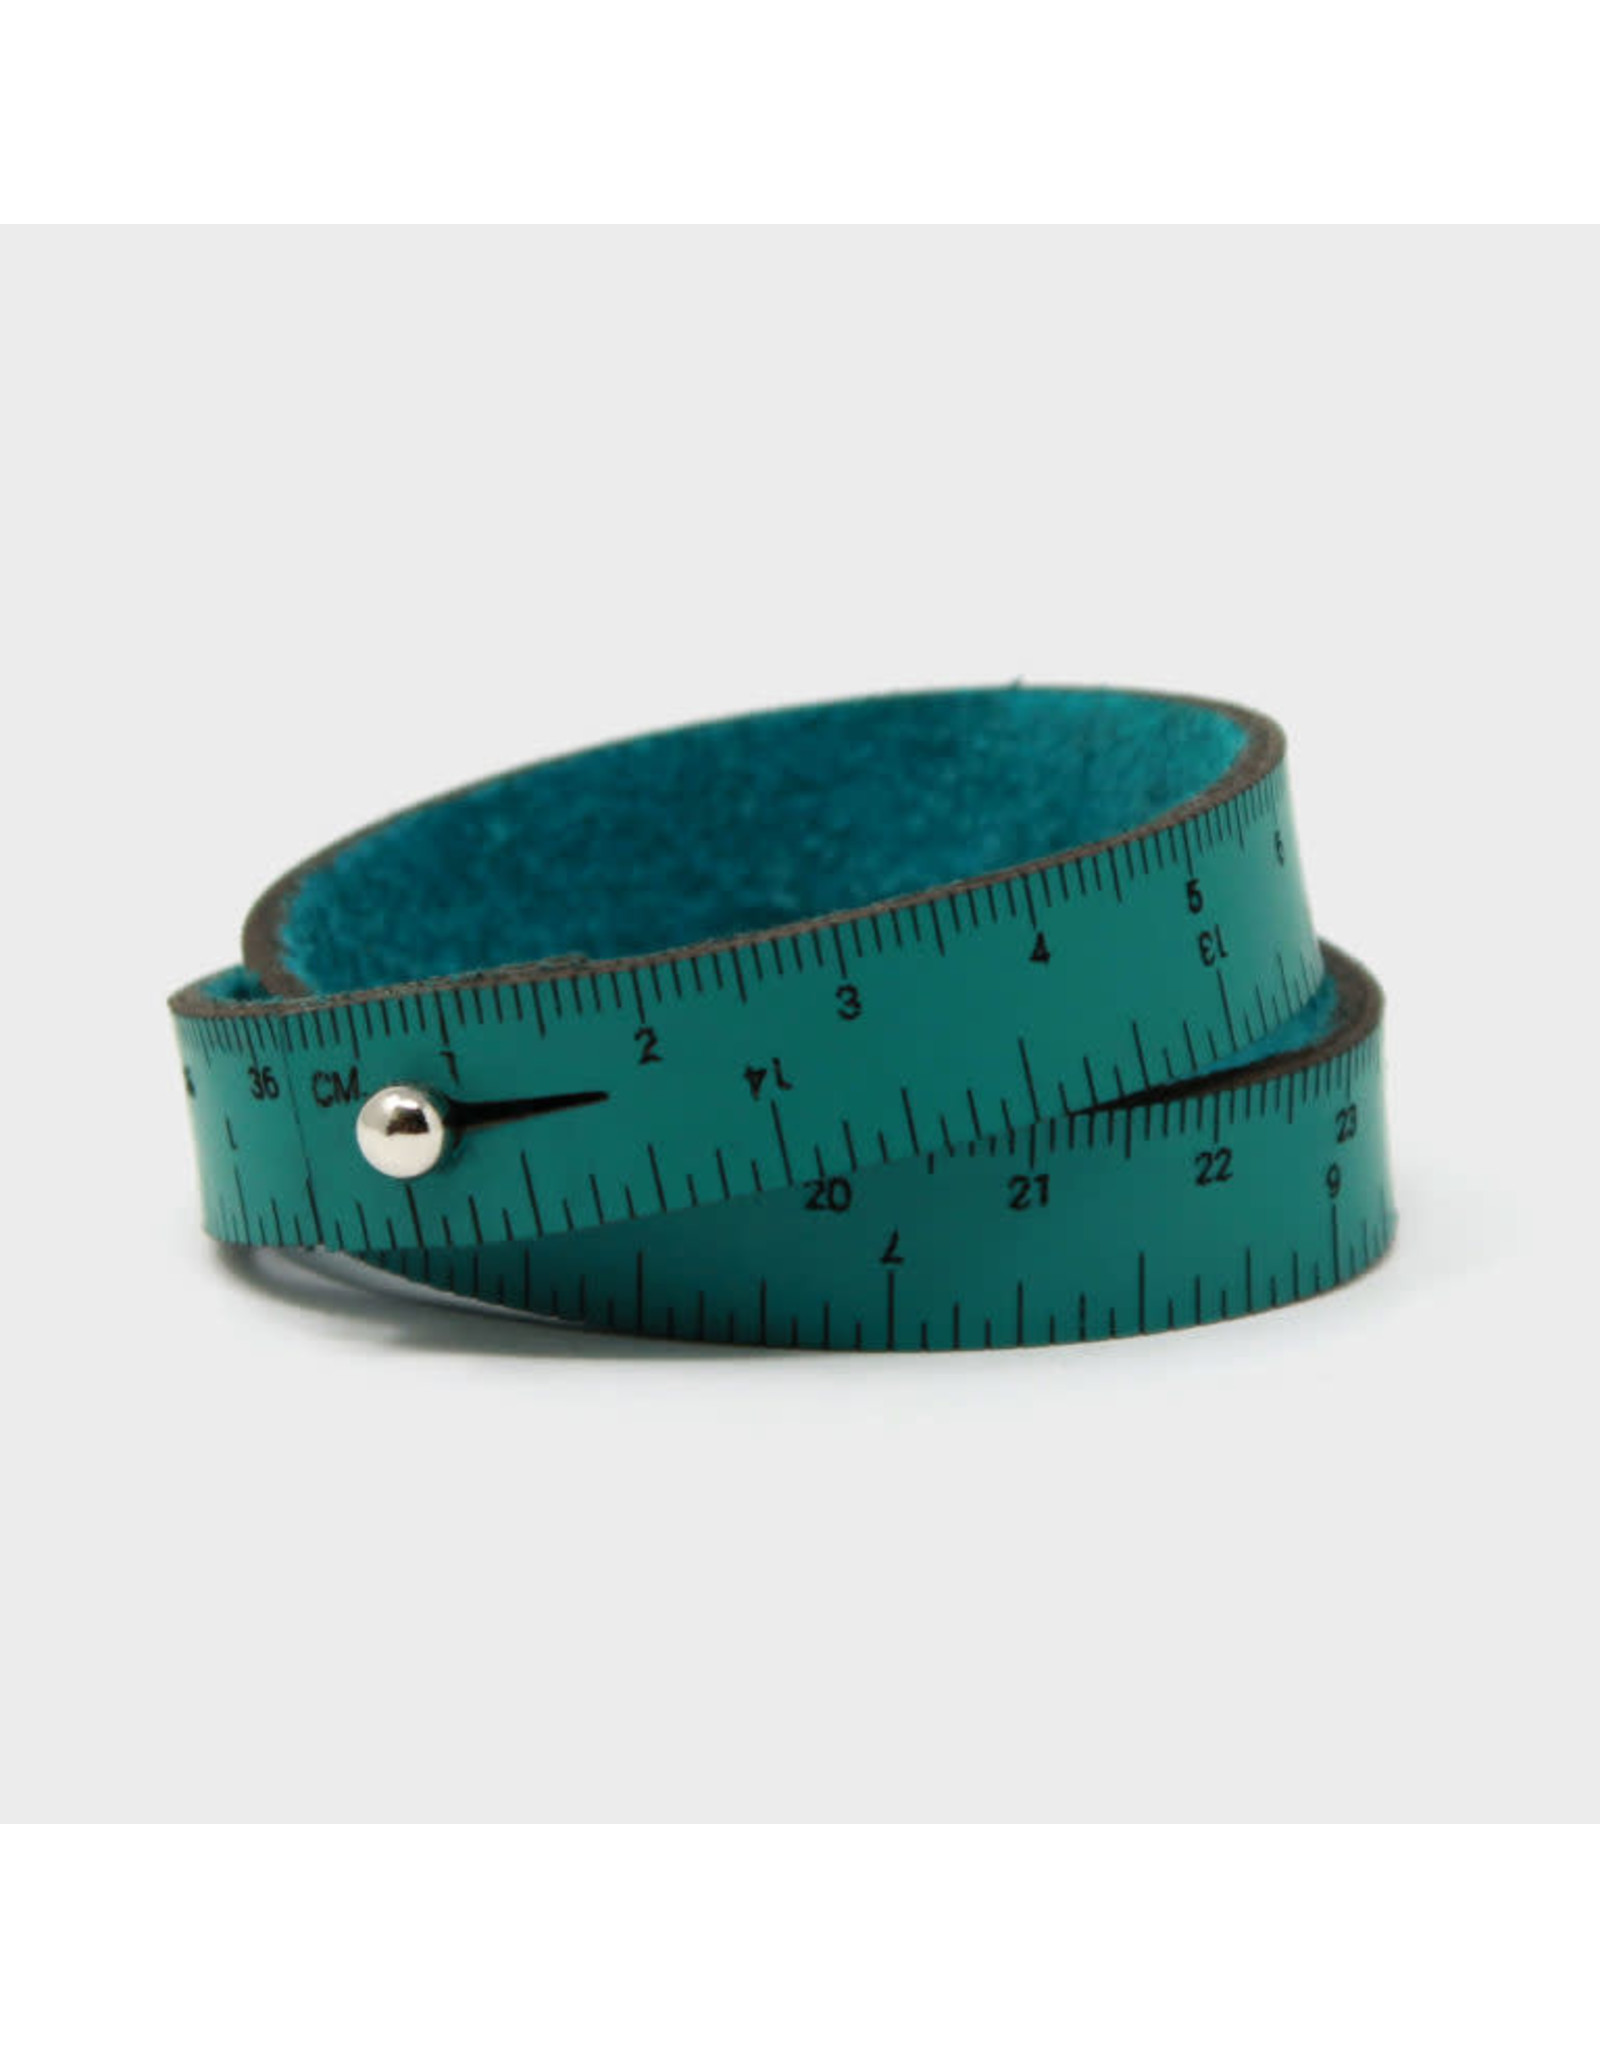 Wrist Ruler - TEAL - 16 inches